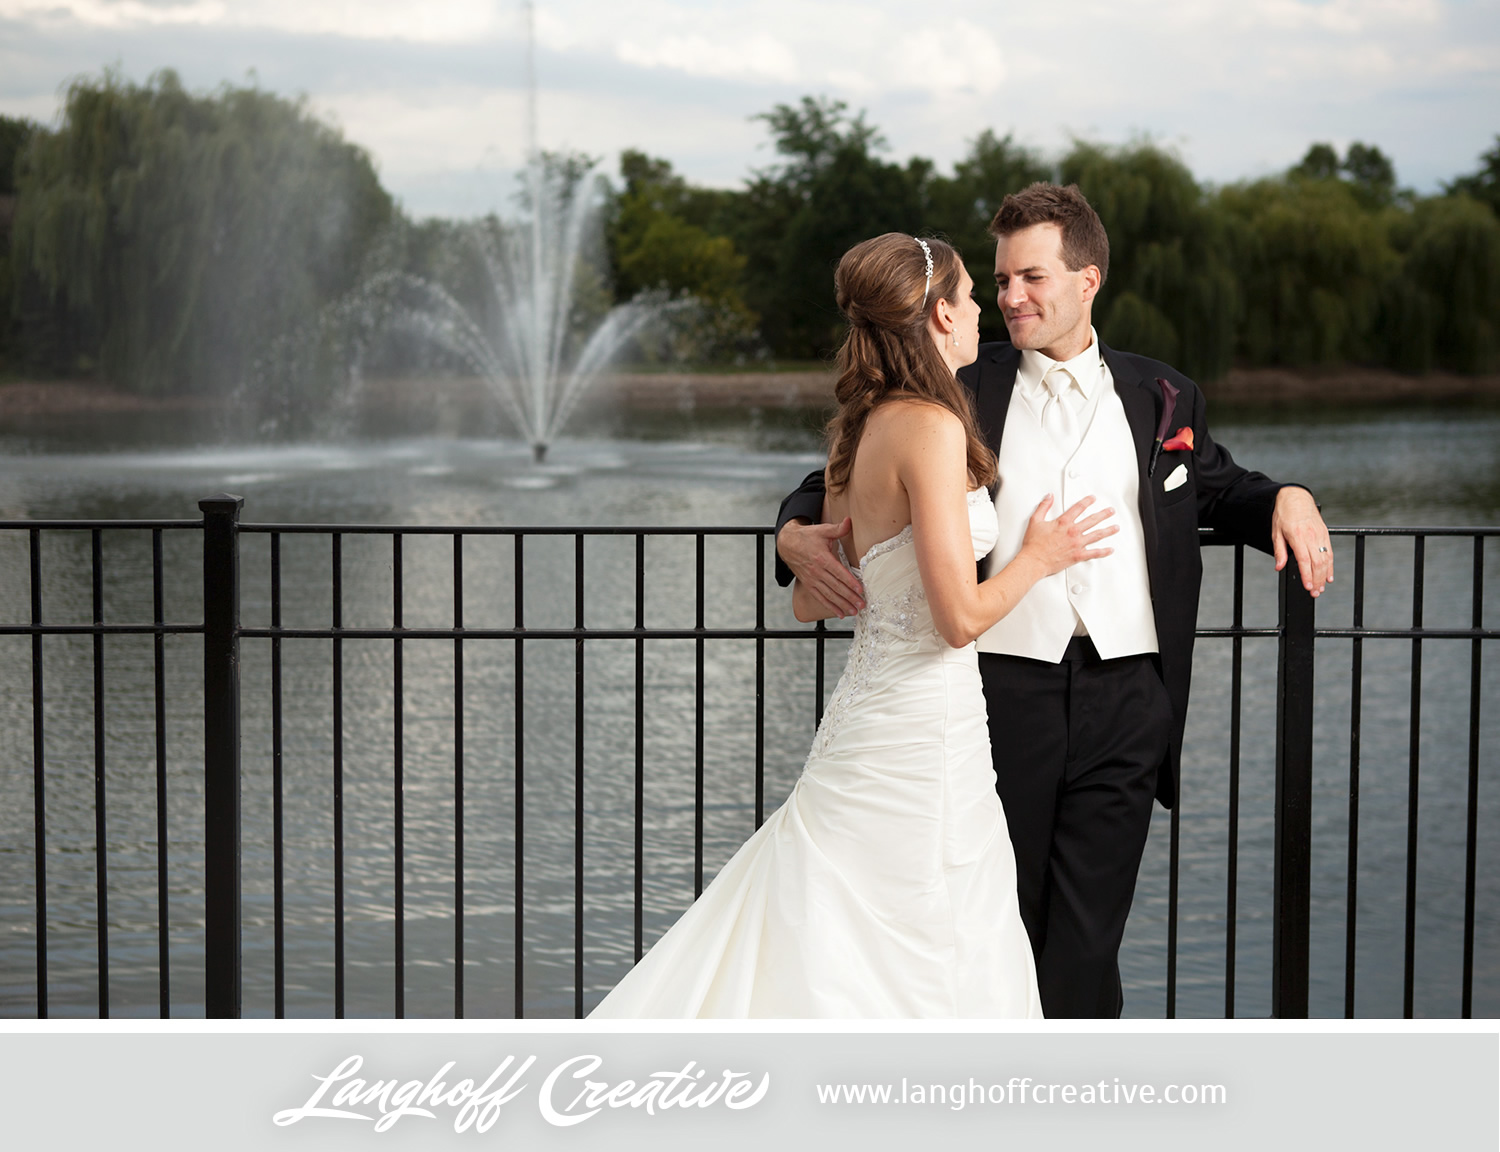 PlainfieldWedding-2013-LanghoffCreative-MattErin-20-photo.jpg